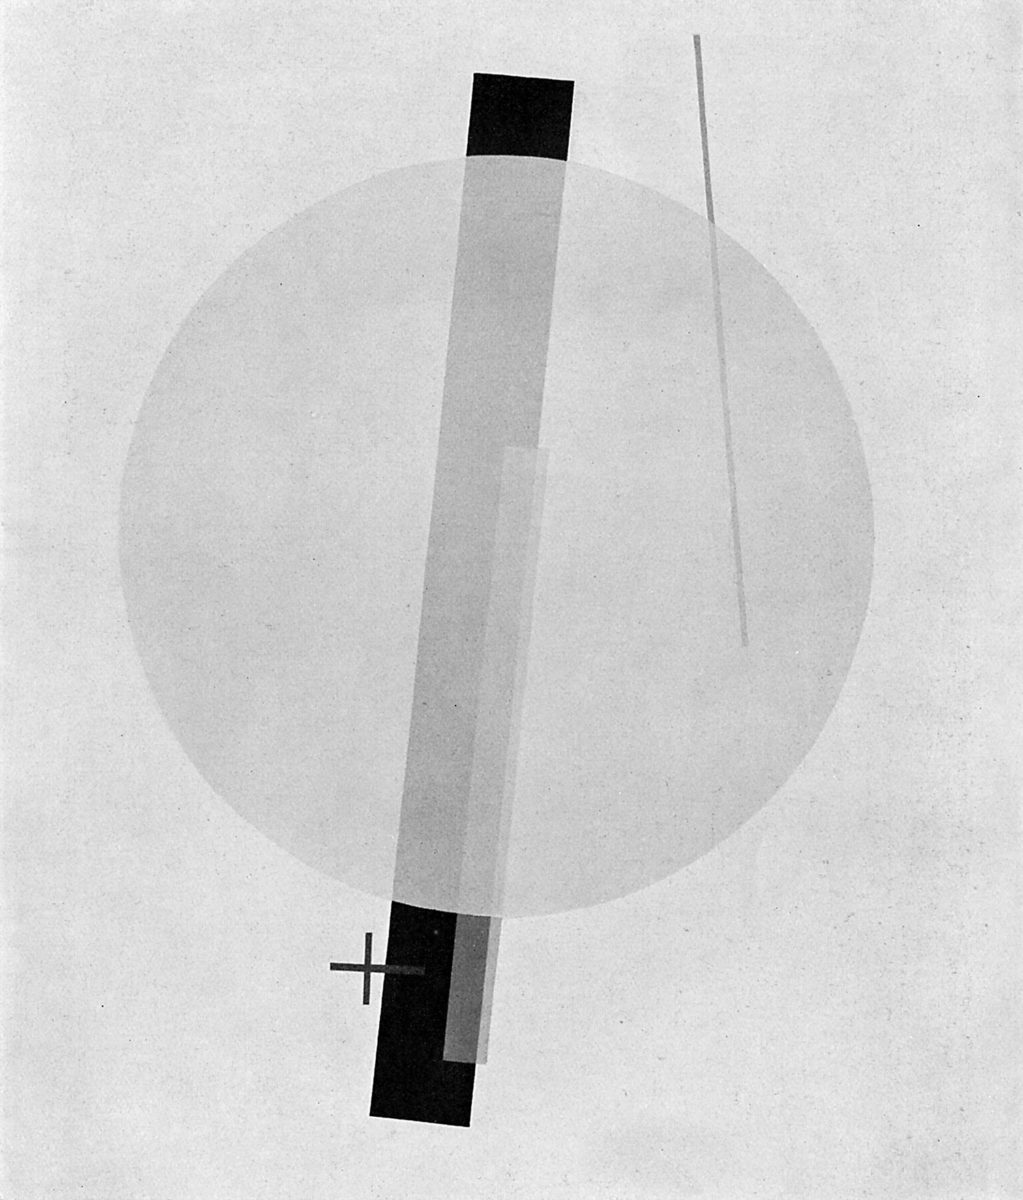 From László Moholy-Nagy, Painting, Photography, Film